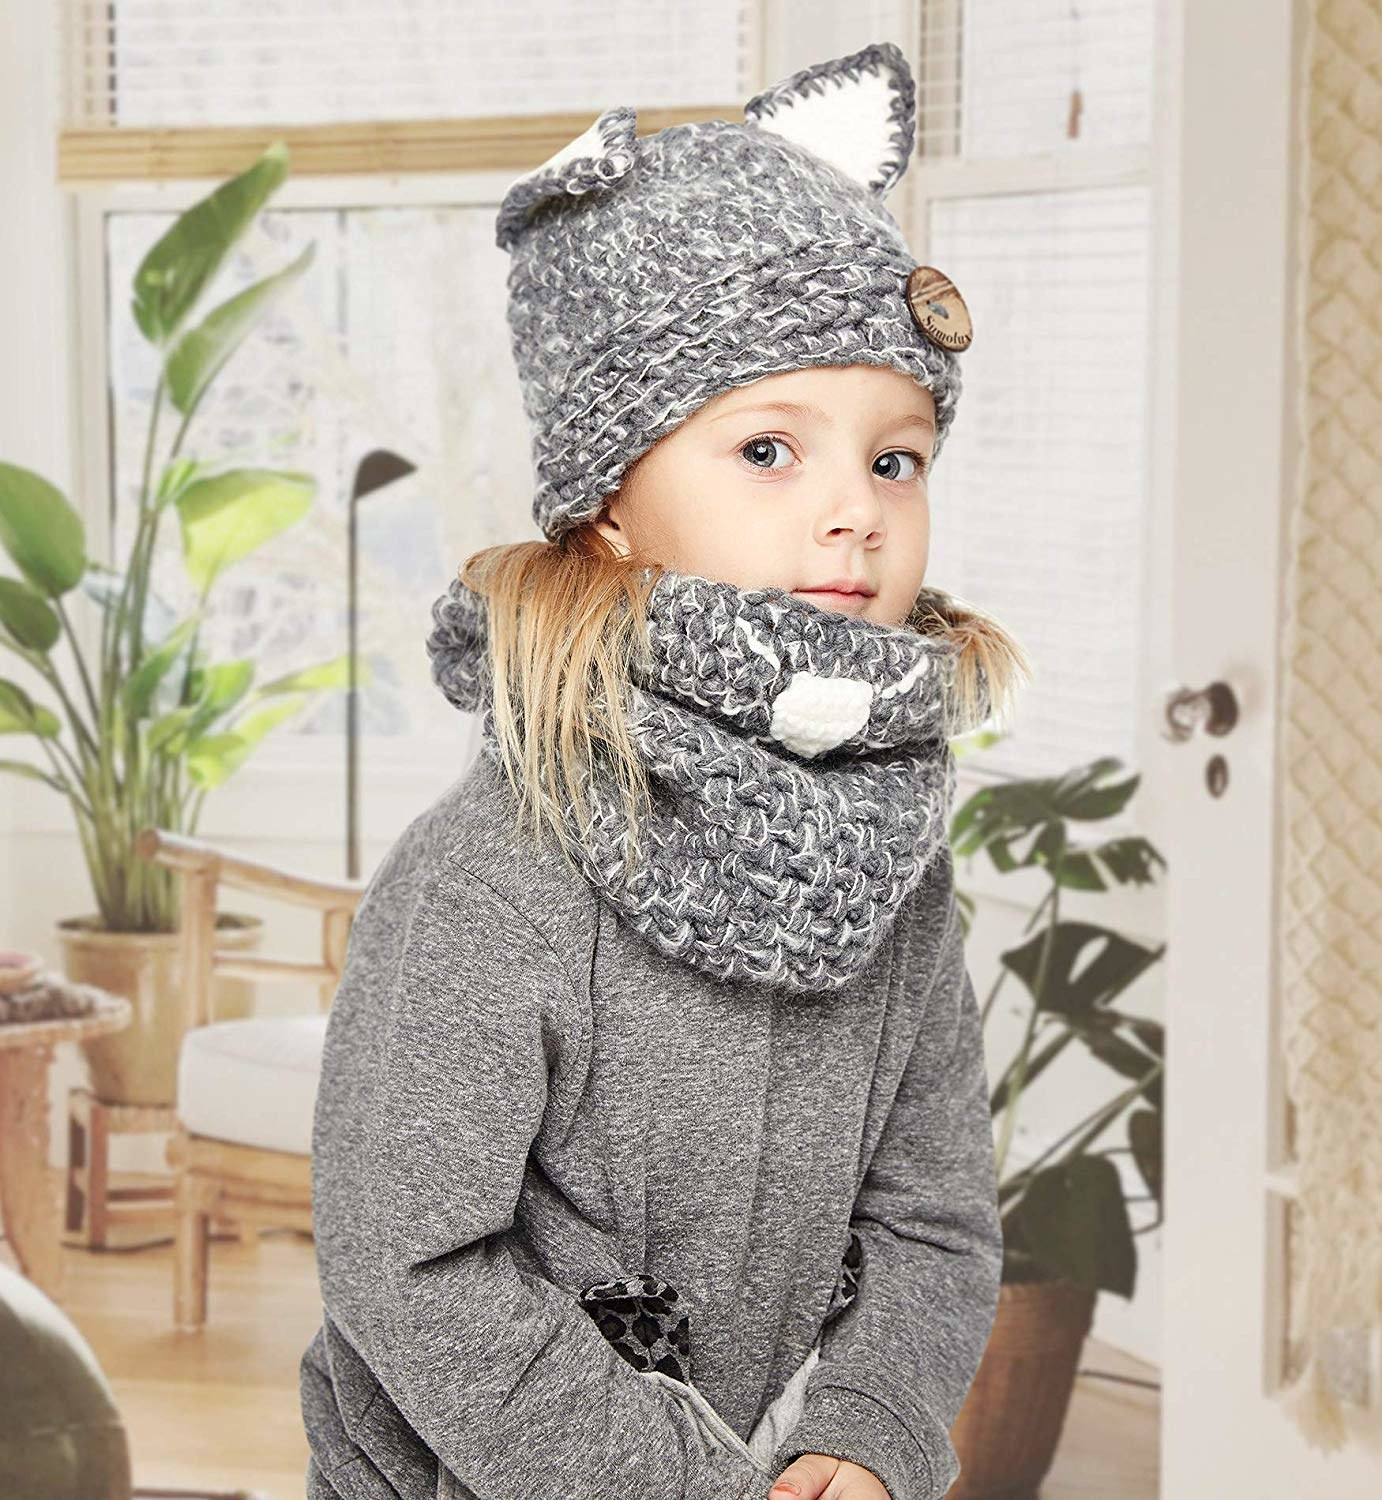 child model in grey scarf and hat with pointed animal ears